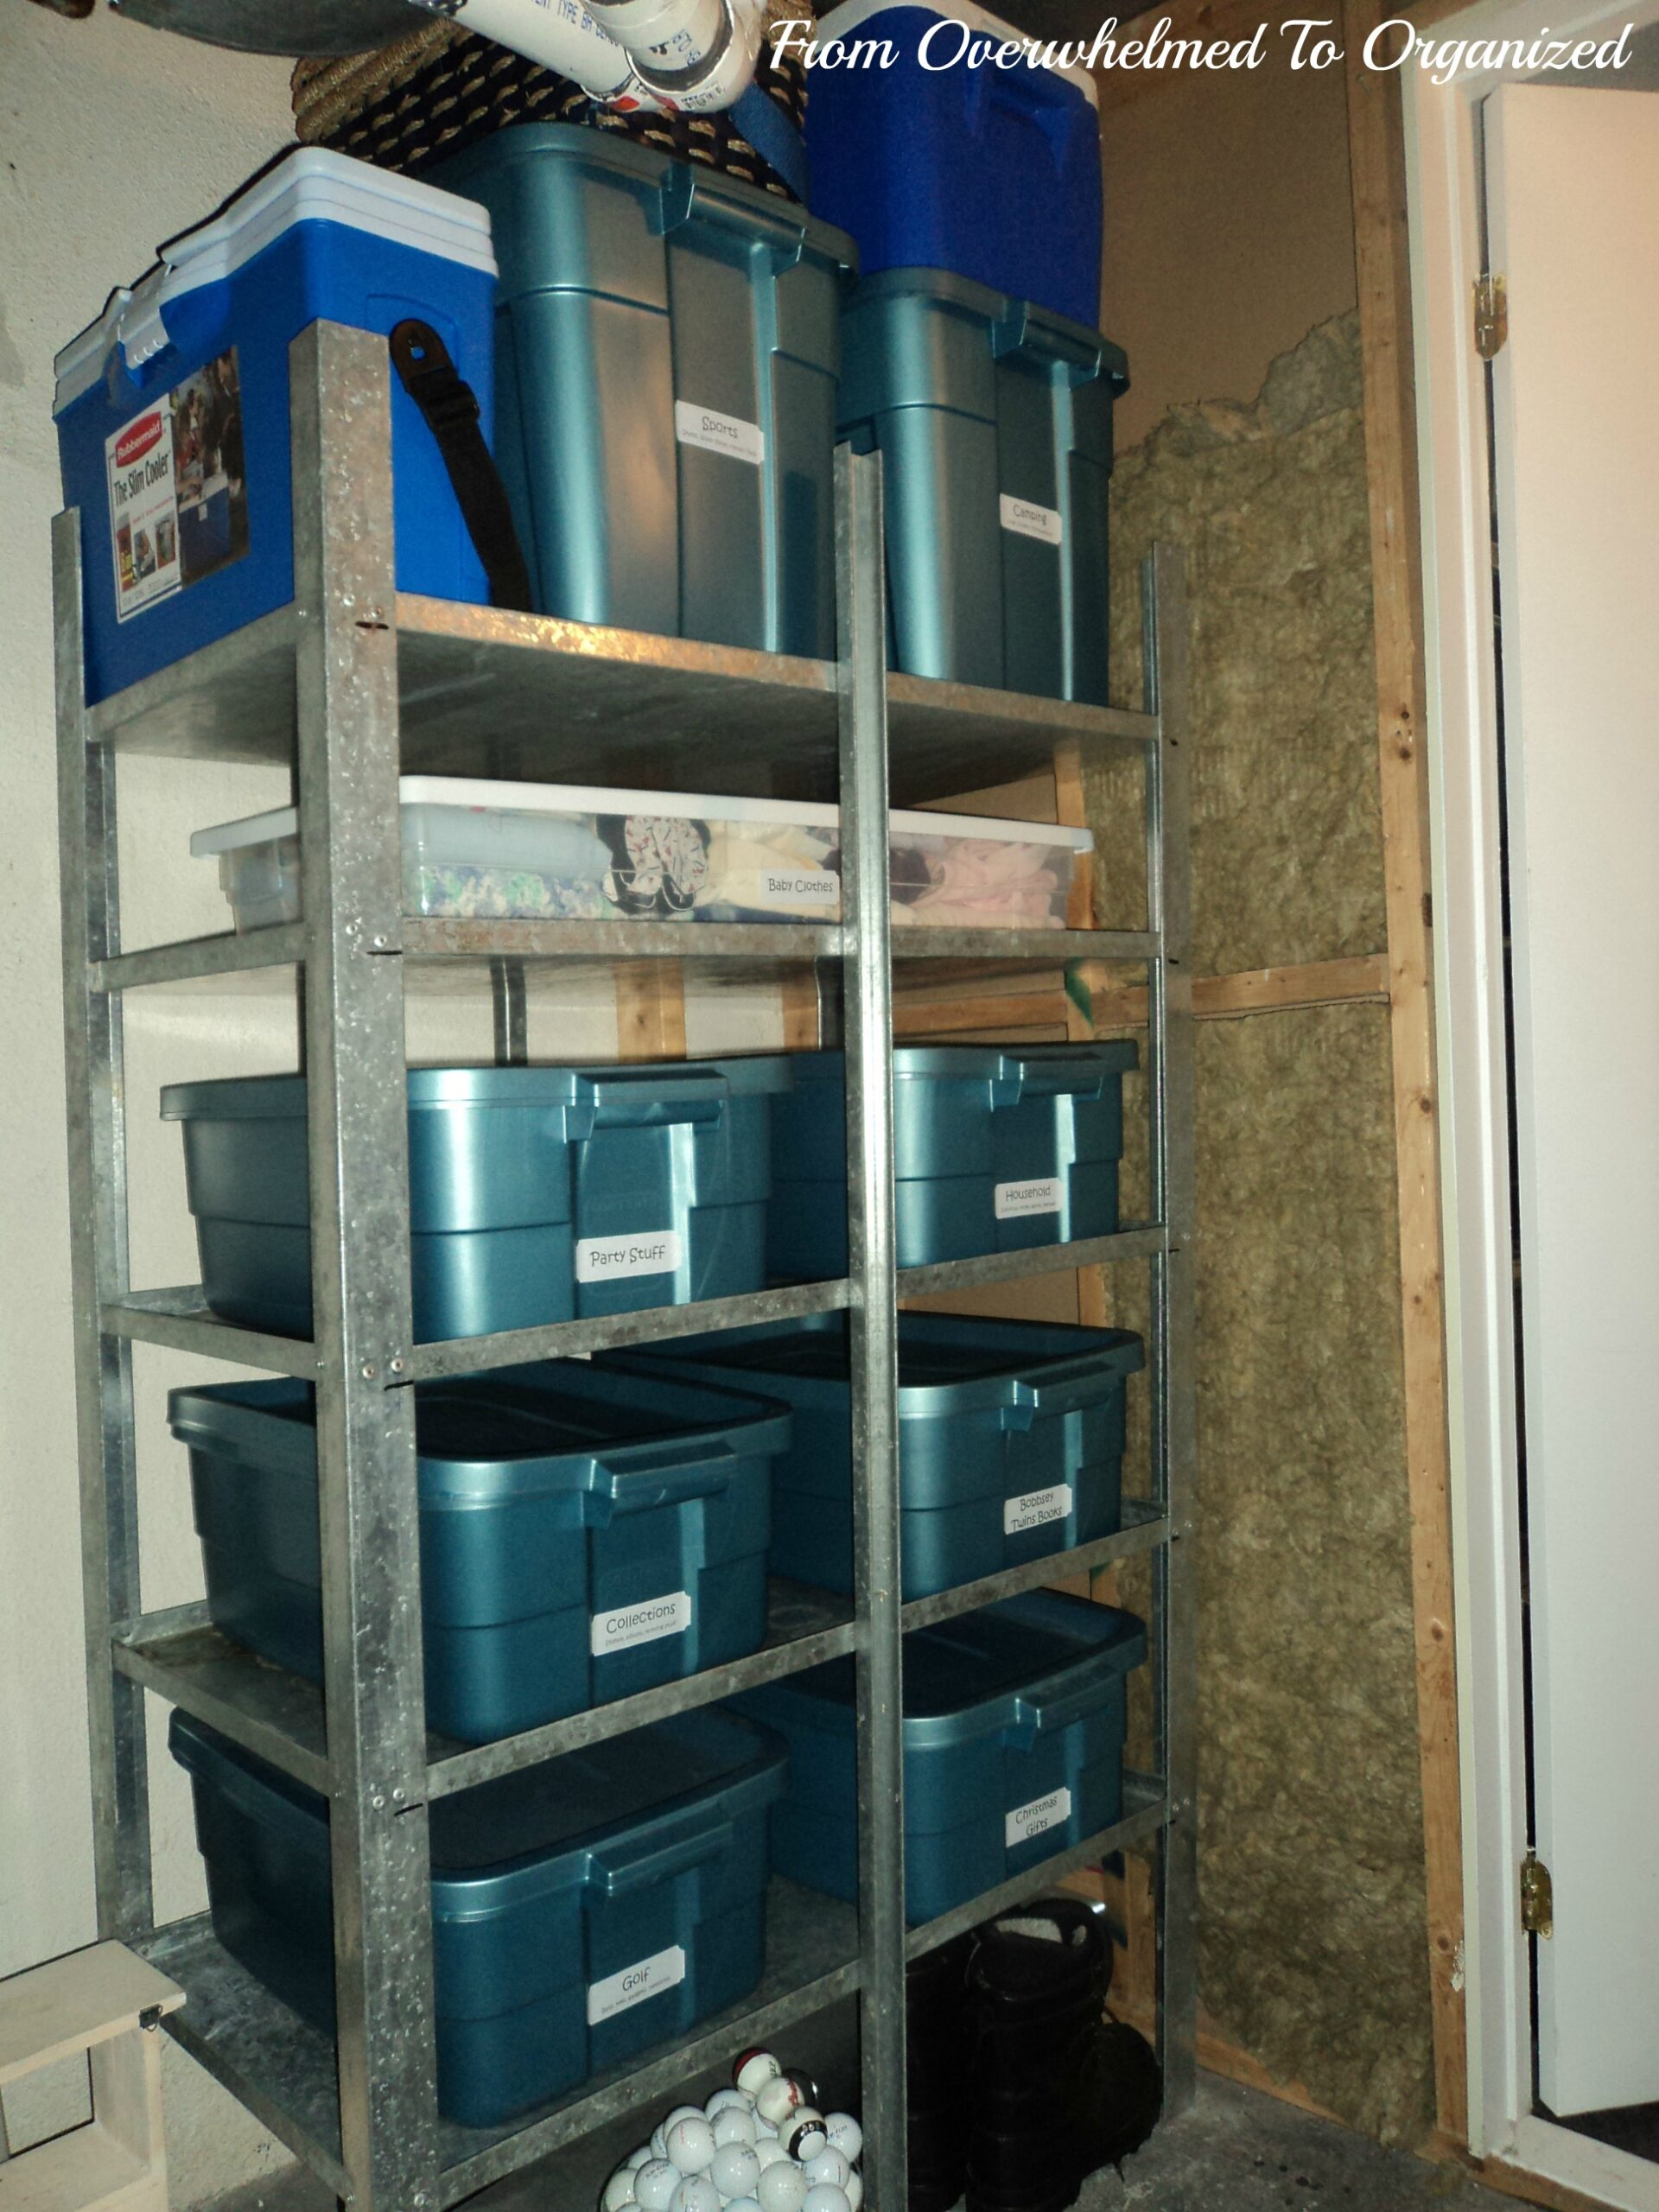 Storage Shelves After